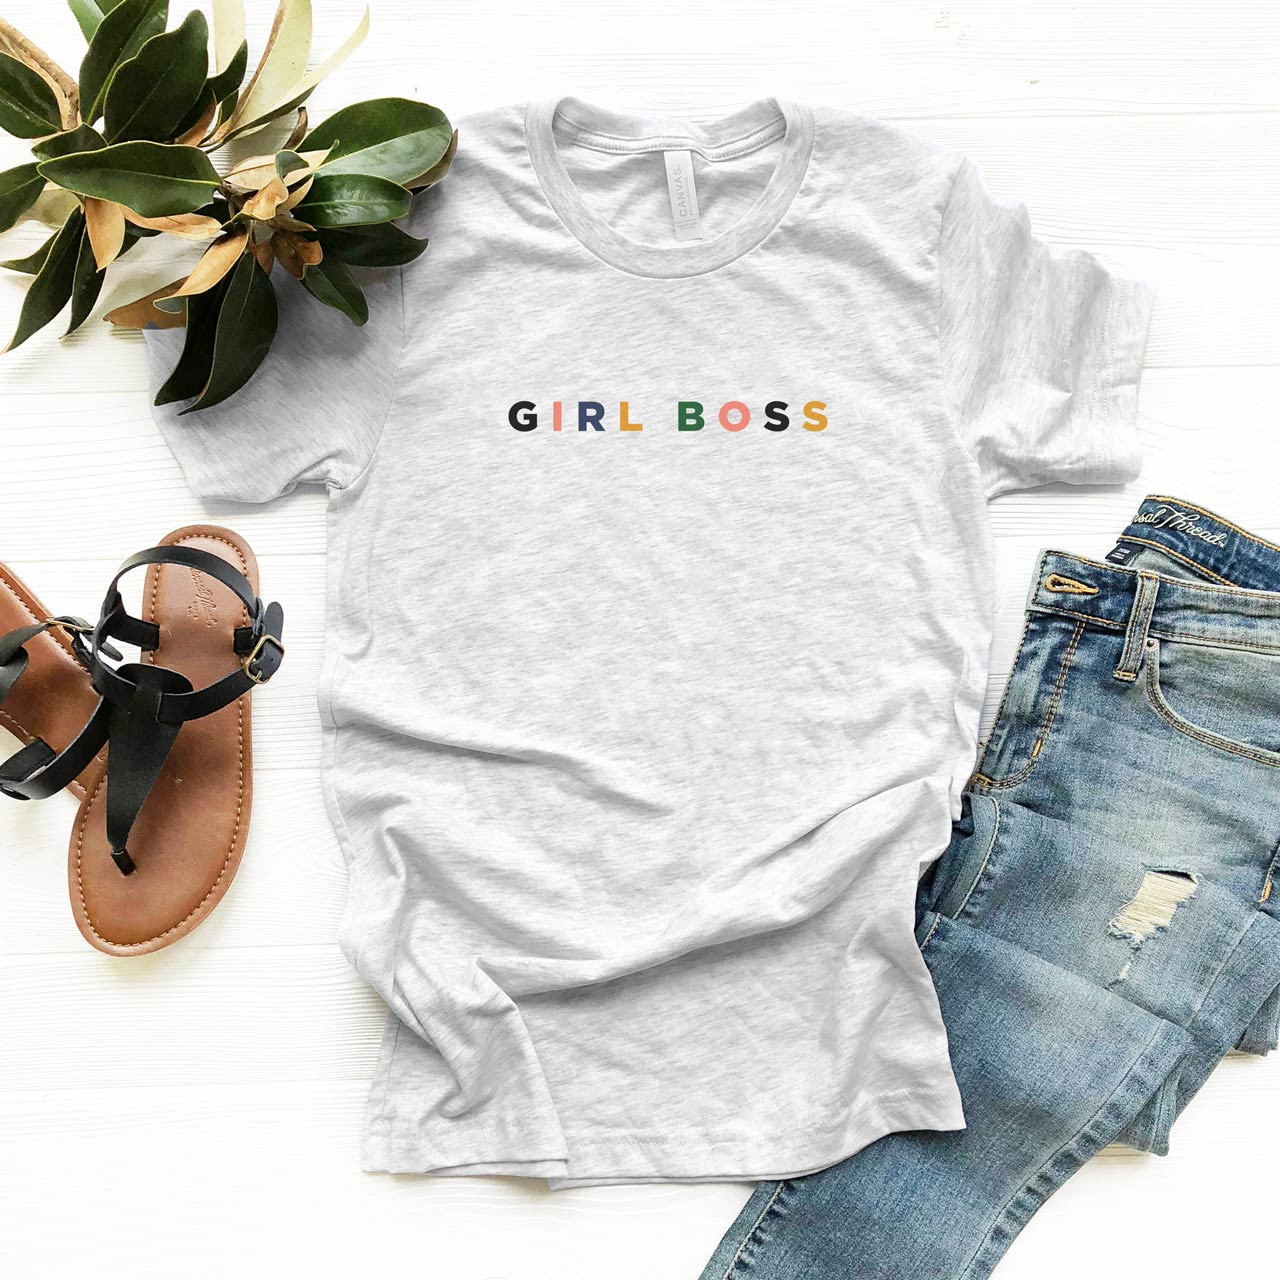 GIRL BOSS Vintage T-Shirt (Color on Light Gray Fleck) from The Printed Home